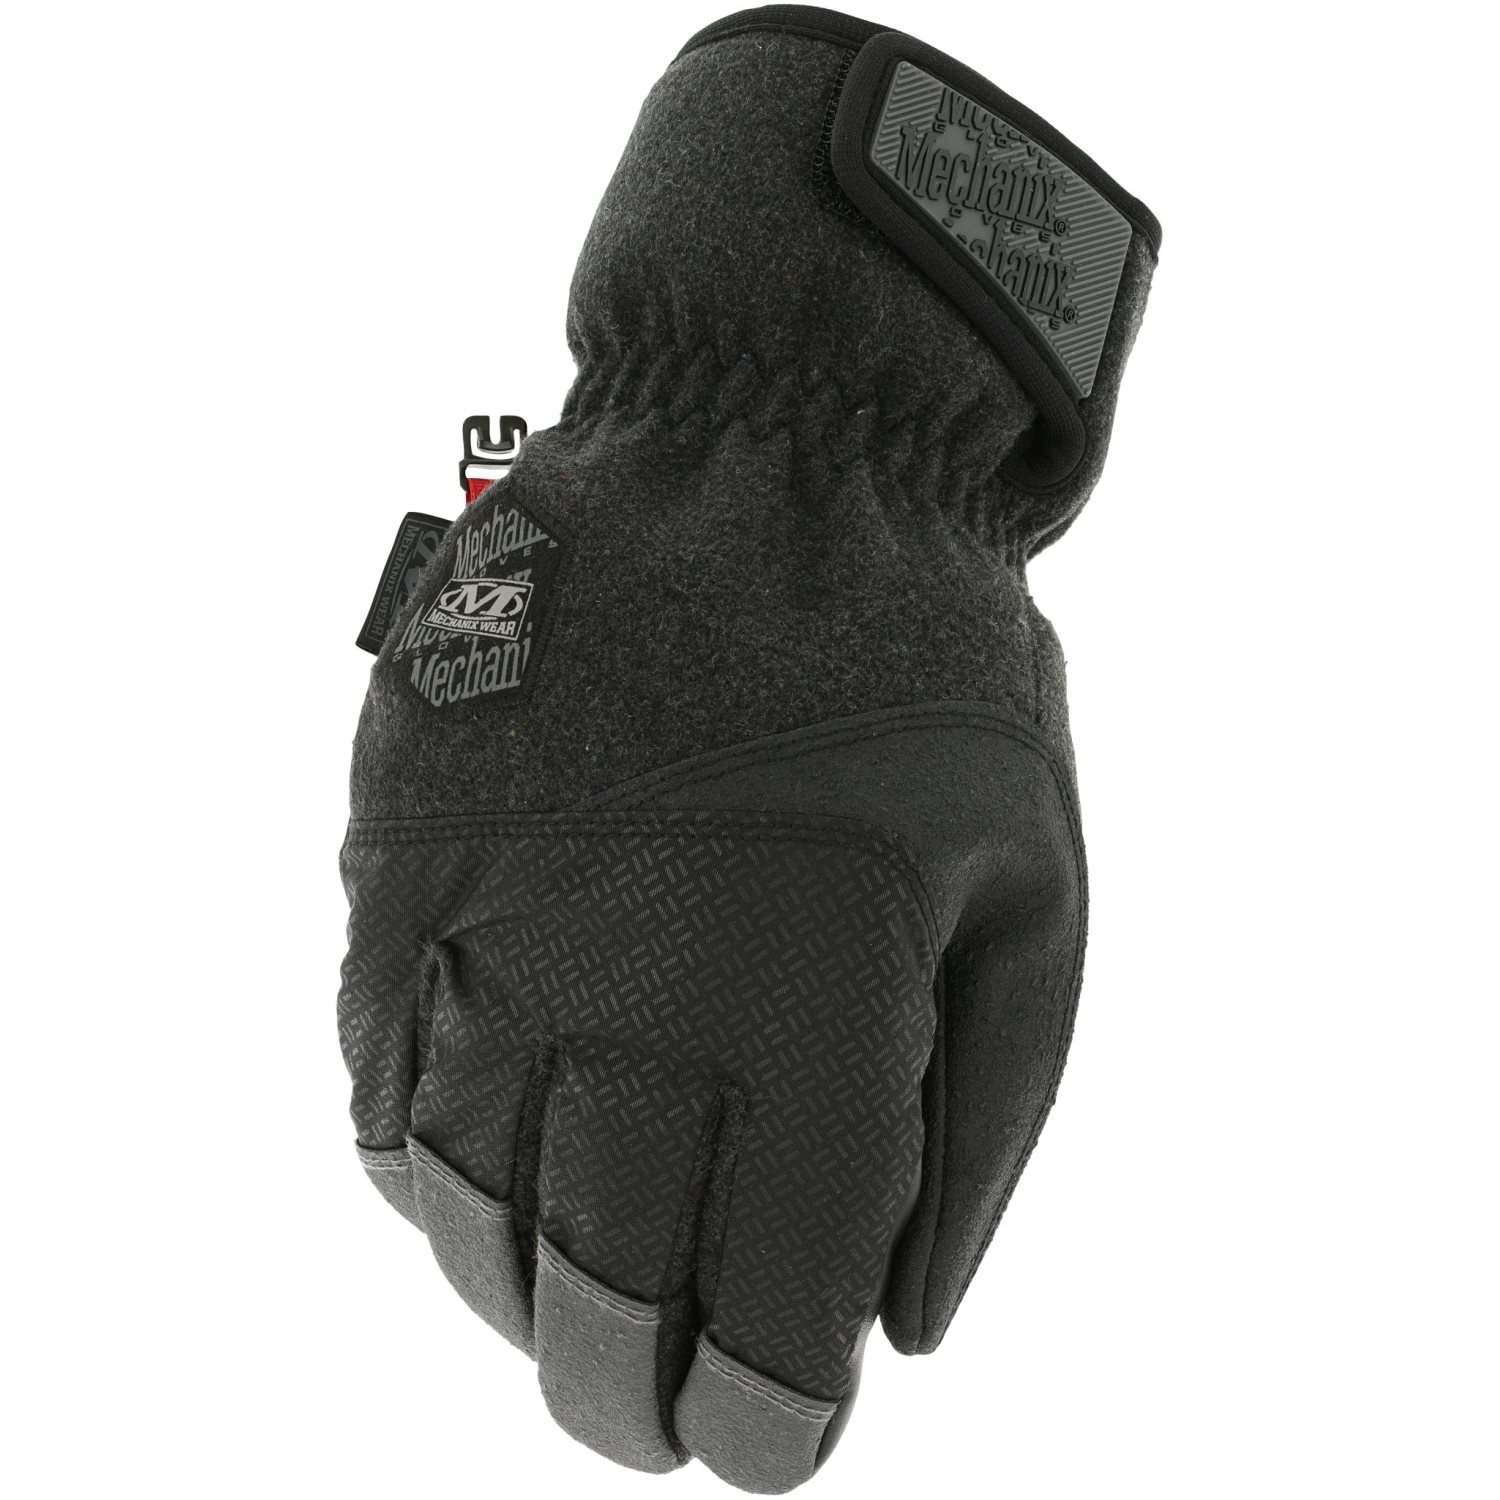 Rukavice COLDWORK WINDSHELL ČERNO/ŠEDÉ MECHANIX WEAR® CWKWS-58 L-11